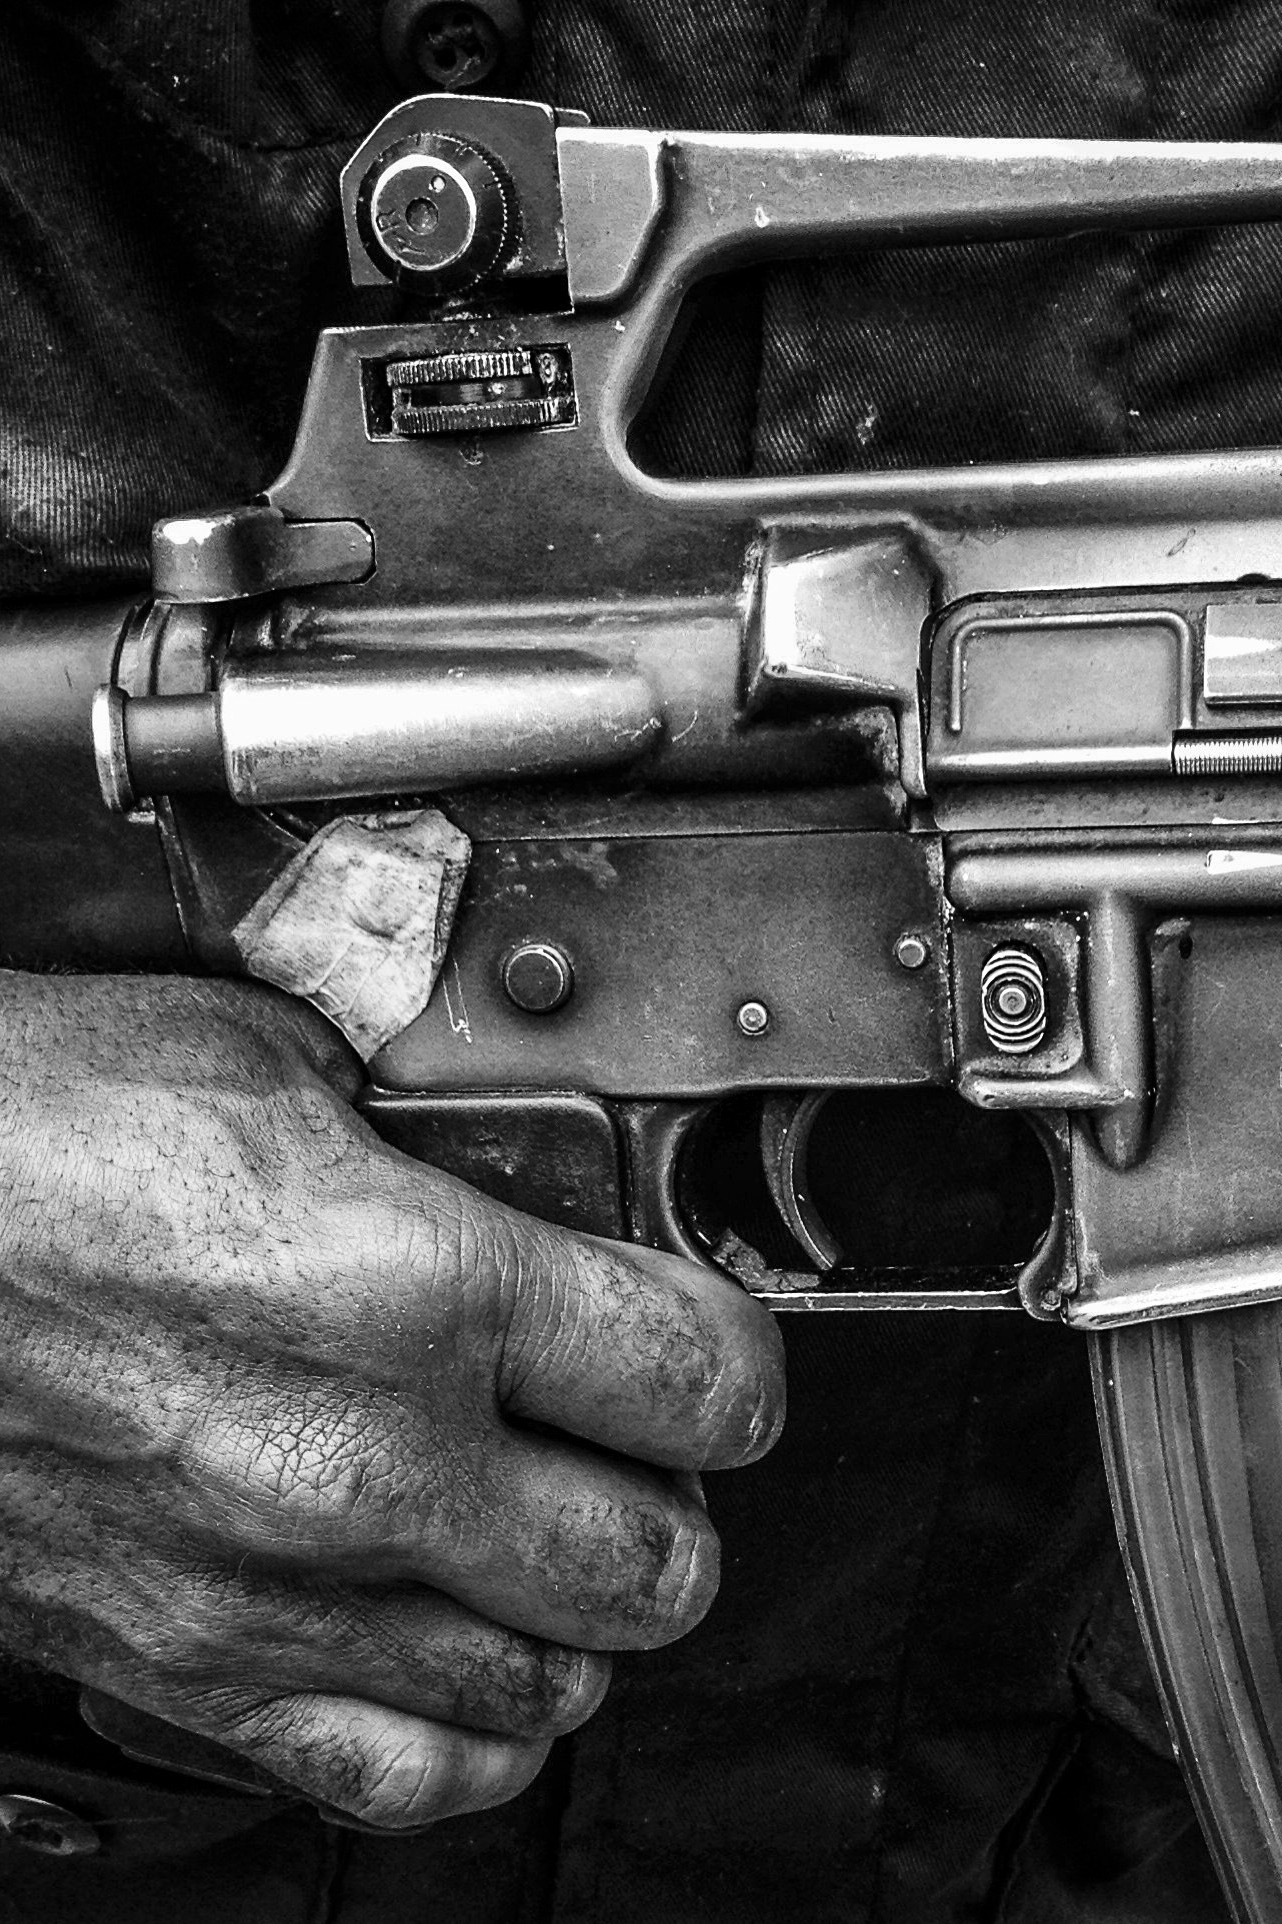 image of AARONTAIT COPYRIGHTED 2014 273 PNG PAPUA NEW GUNIEA DOCUMENTARY PHOTOGRAPHER BLACK WHITE PORTRAIT TRIBAL TRADITIONAL TRAVEL PHOTOGRAPHER SECURITY GUN M16 POLICE ARMED HEALTH SAFETY